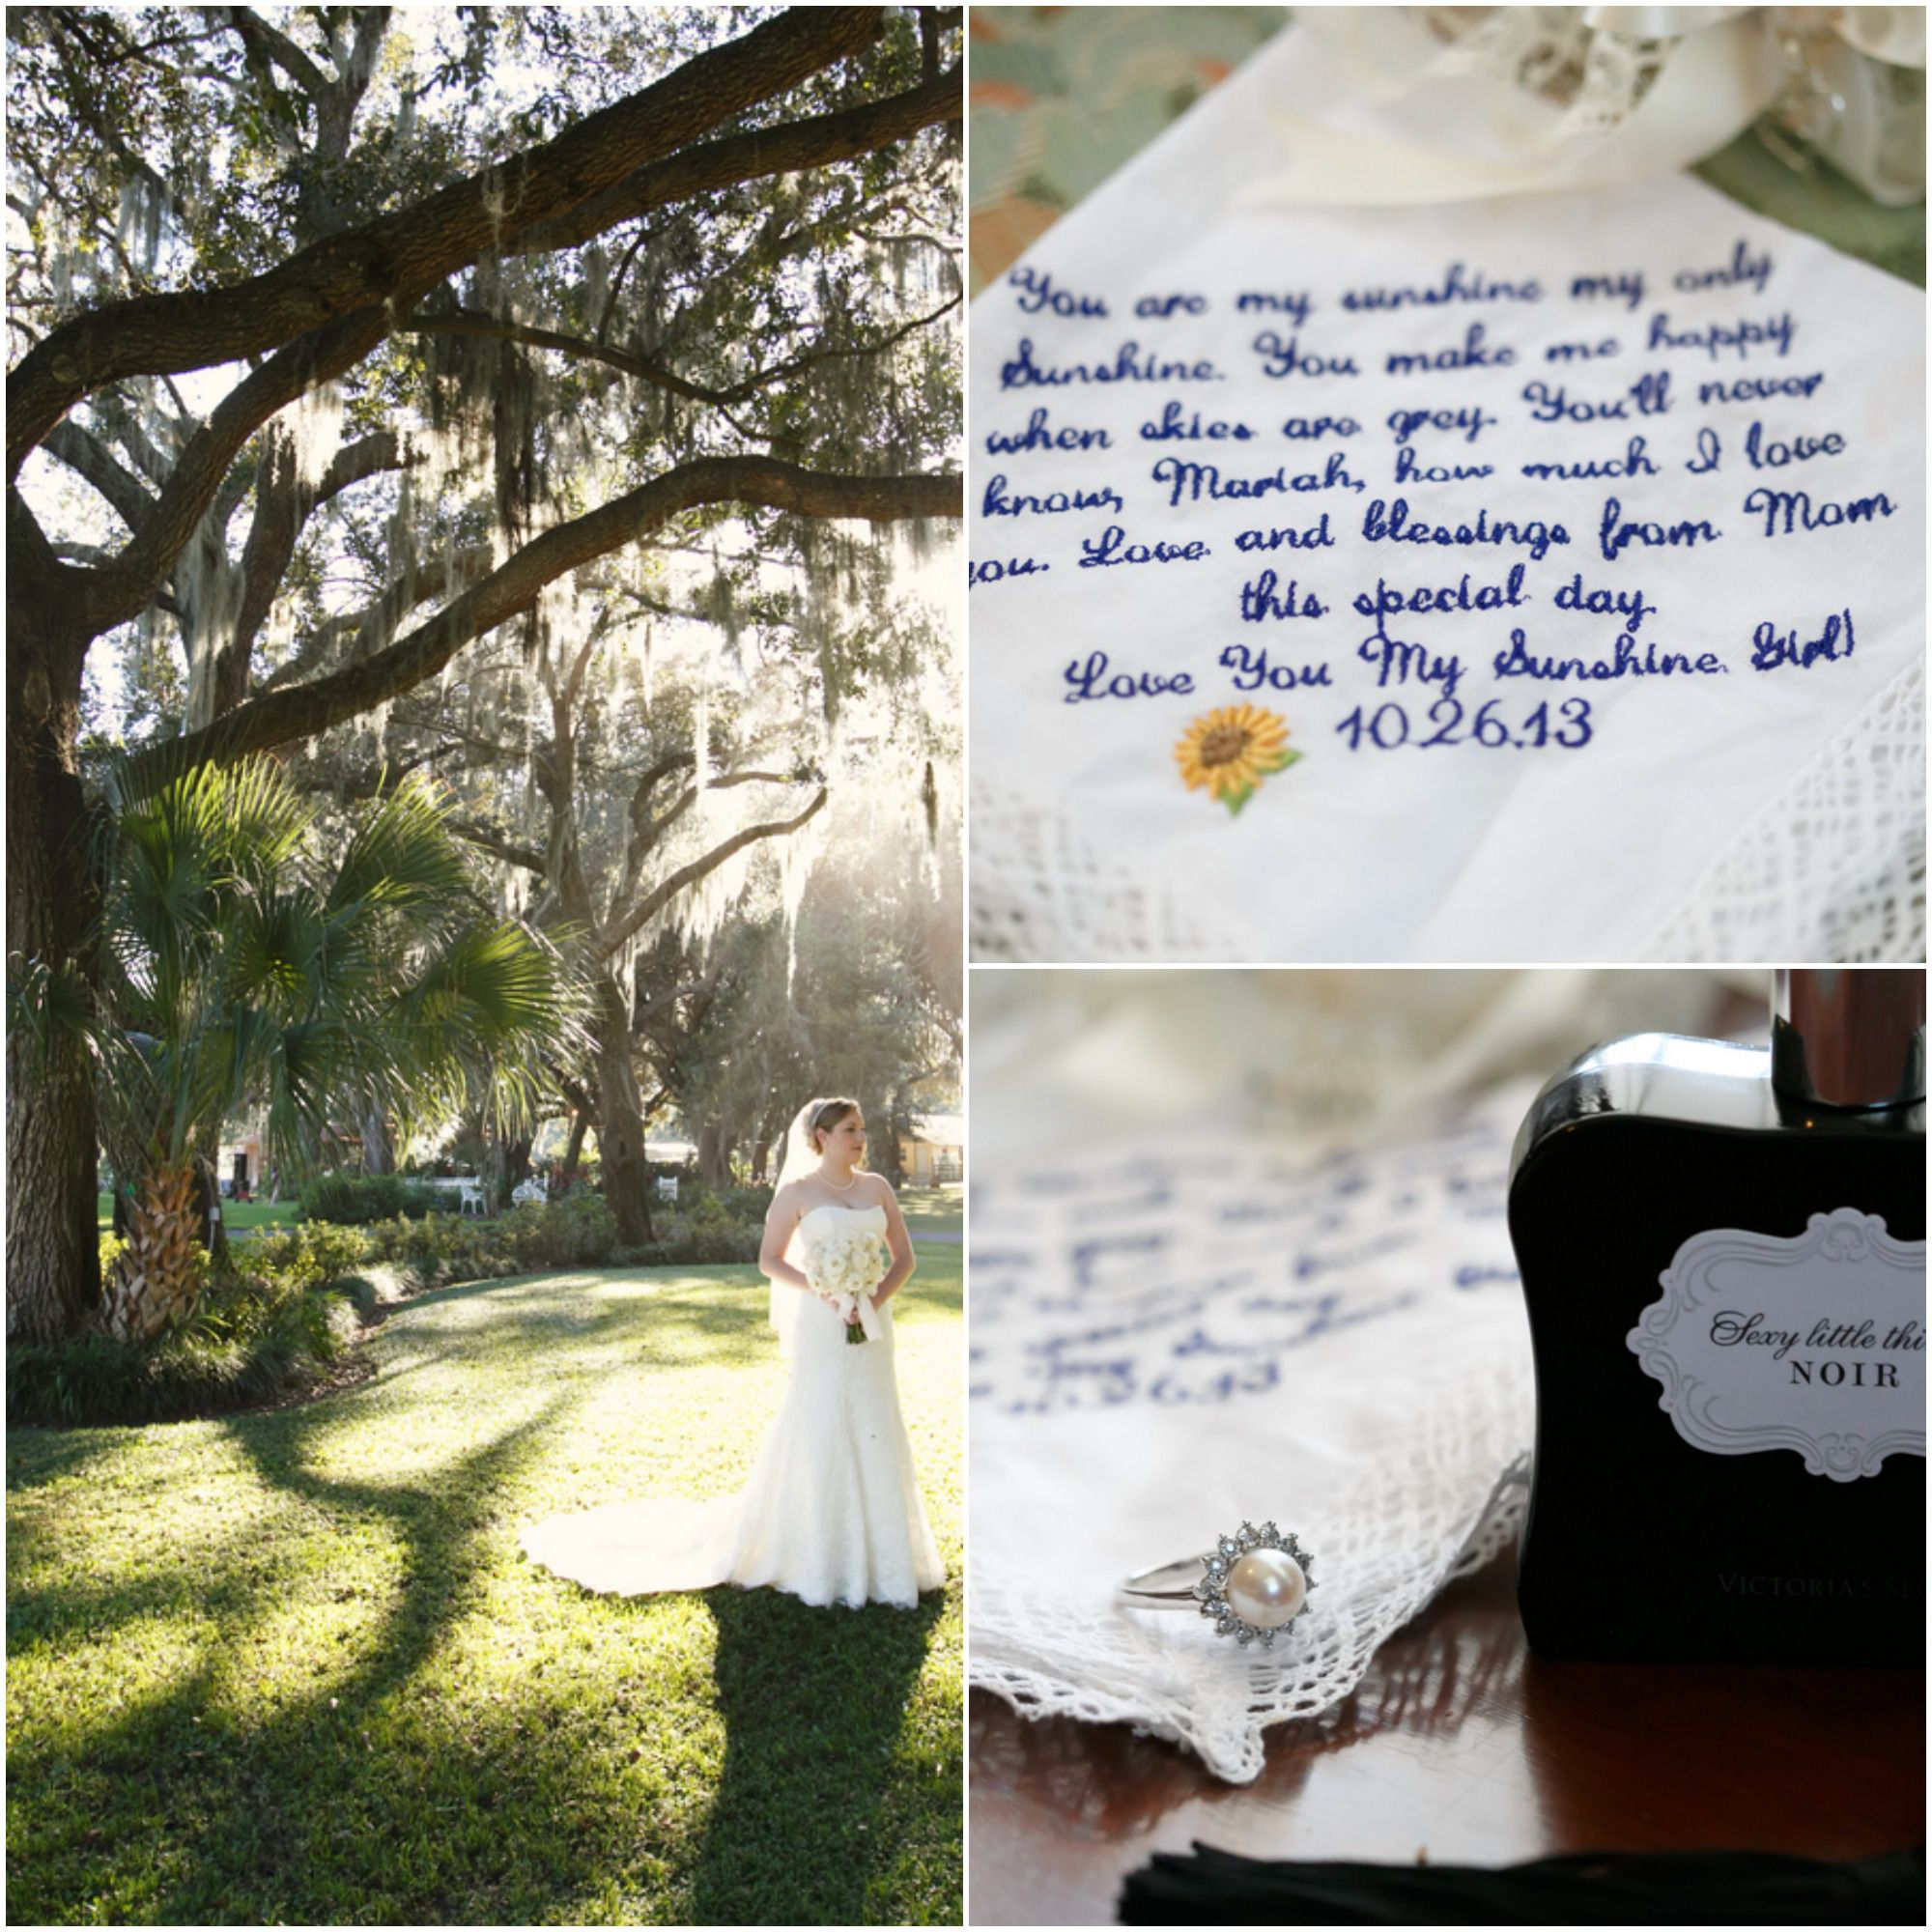 Southern Elegant Rustic Country Wedding: Southern Country Ranch Wedding